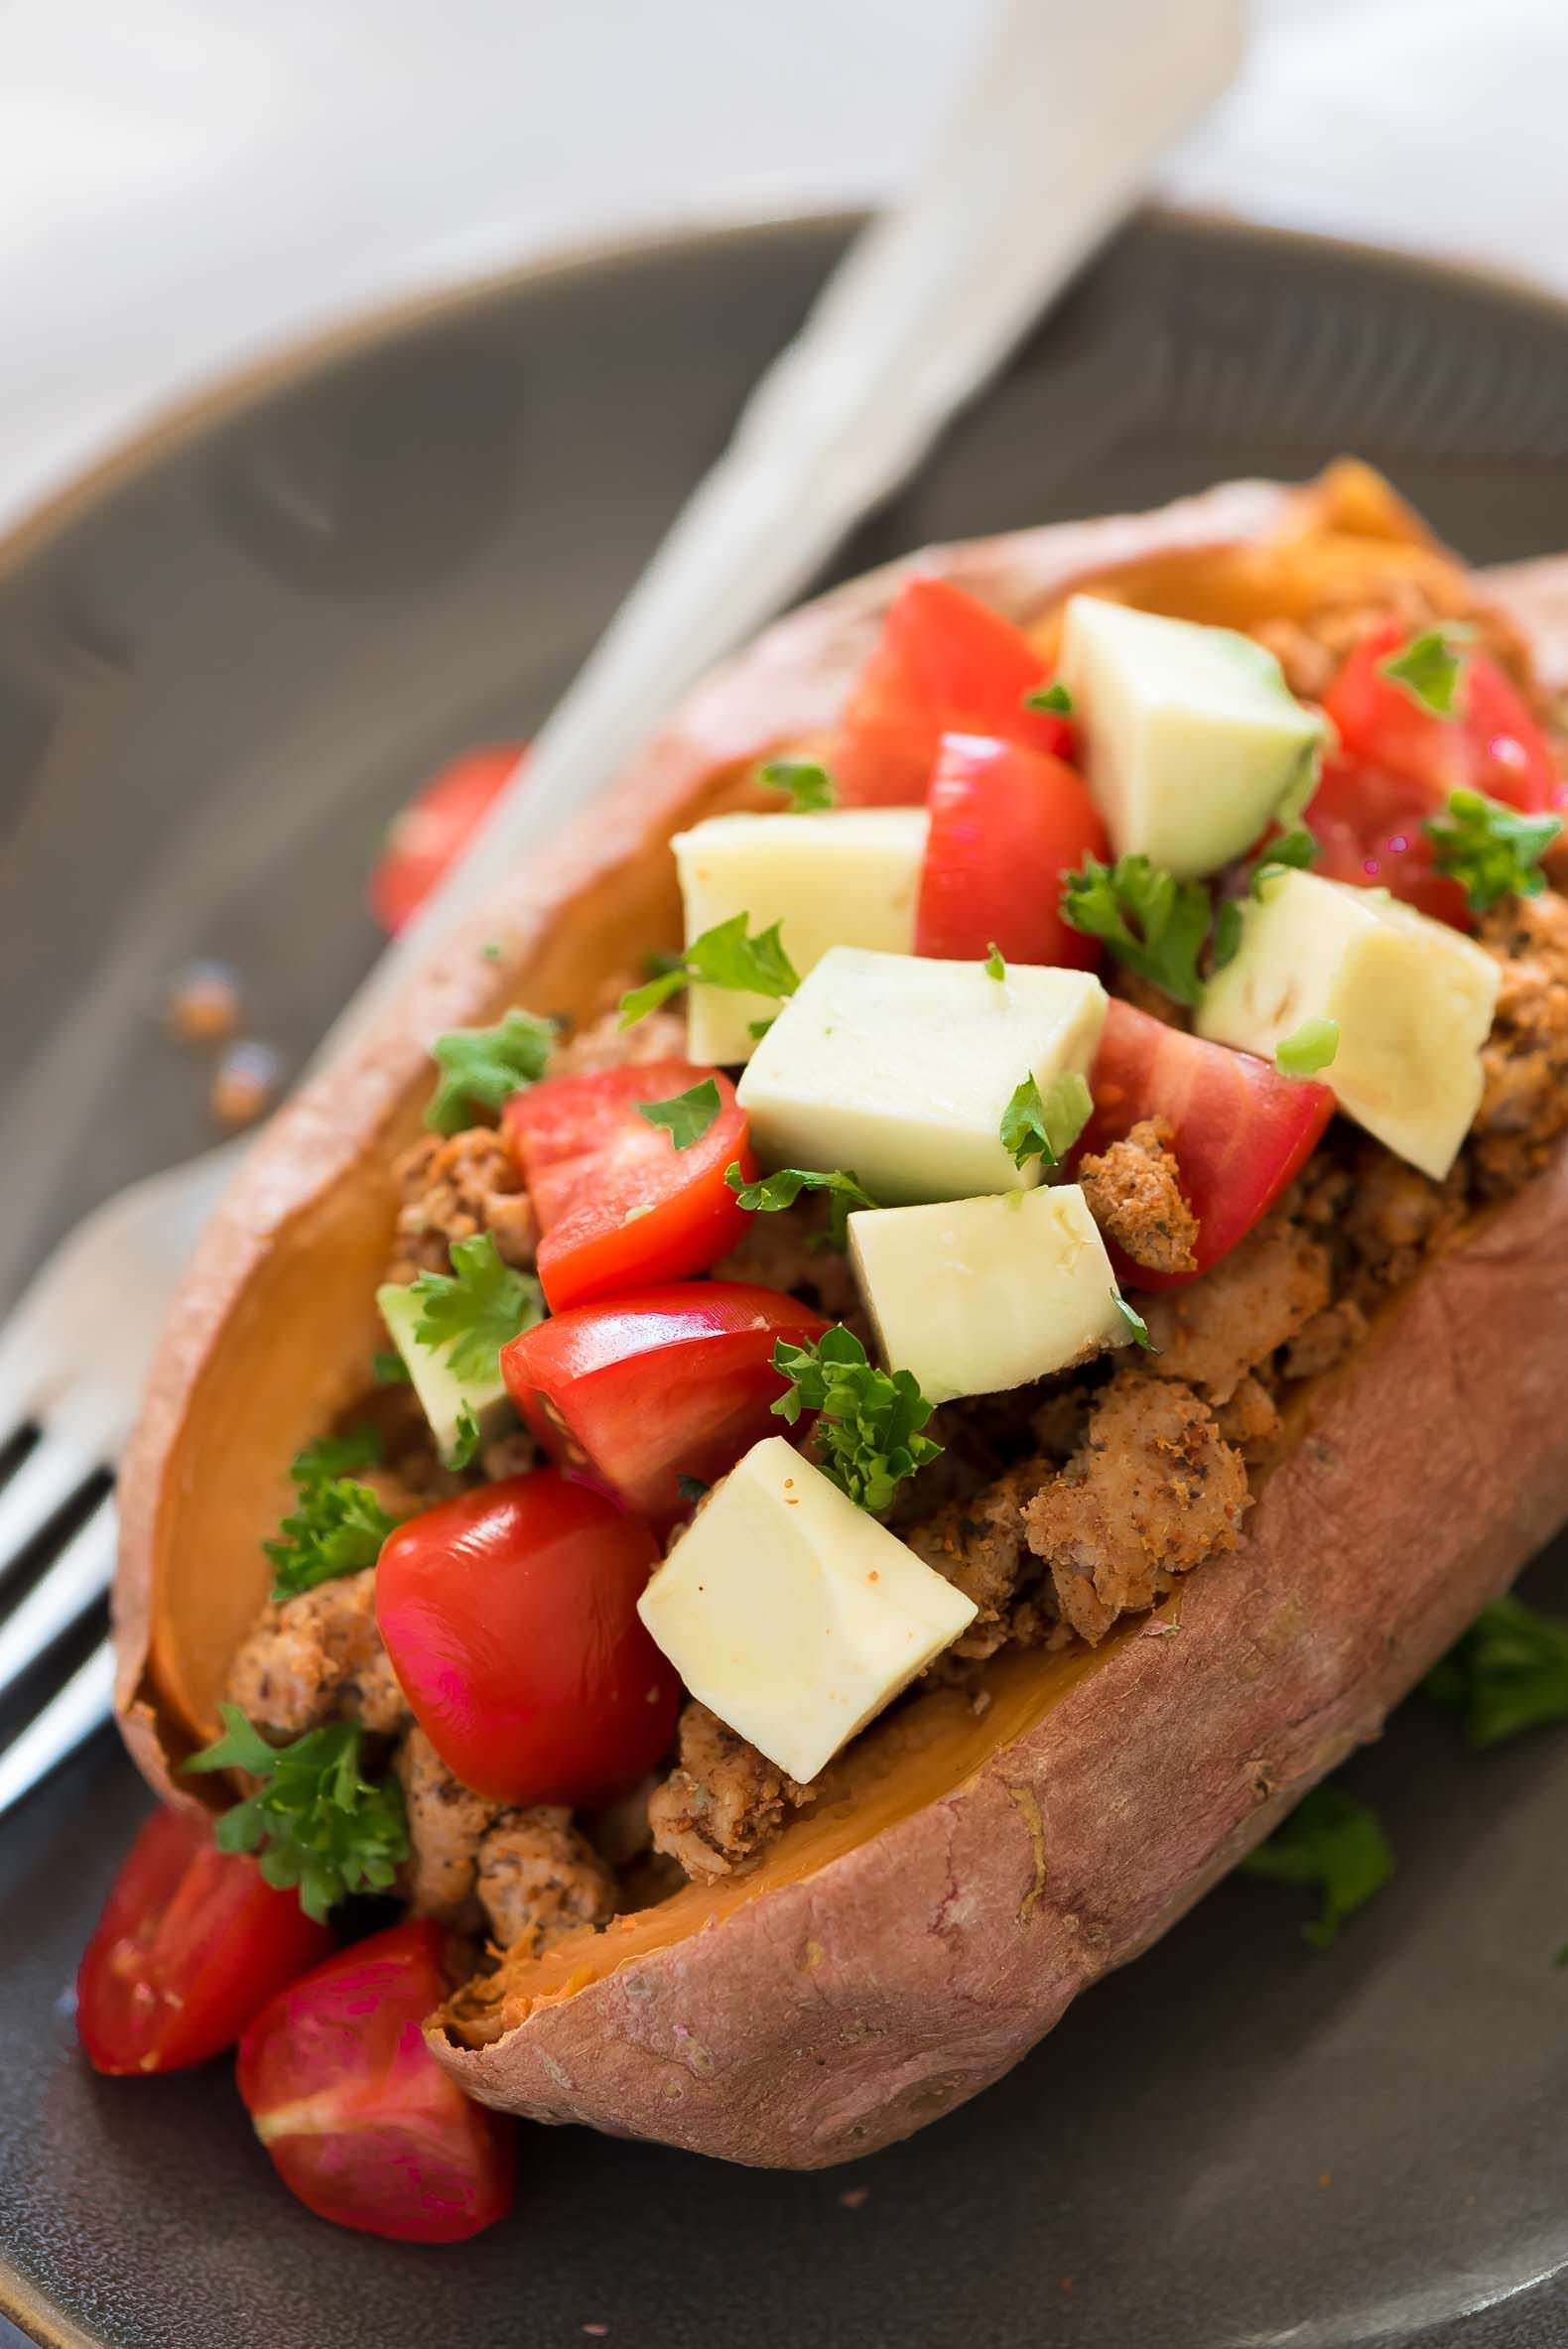 Taco Paleo Stuffed Sweet Potatoes require only 5 ingredients making these sweet and slightly spicy potatoes a healthy, make ahead dinner and lunch option!